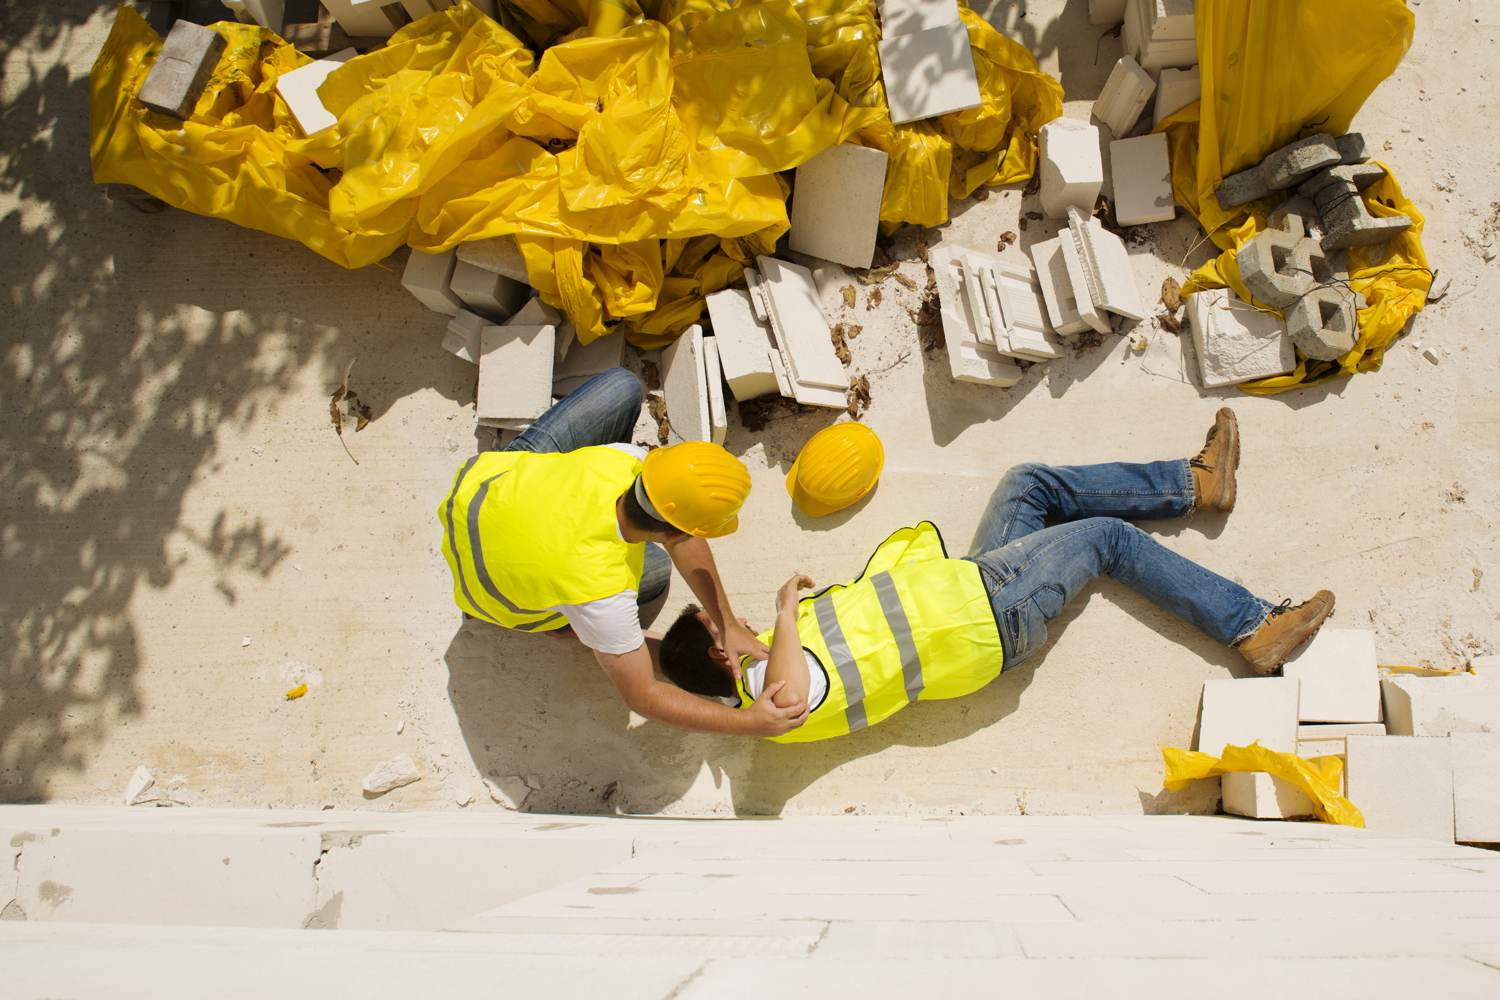 Injured construction site worker lying on ground, co-worker attending to him